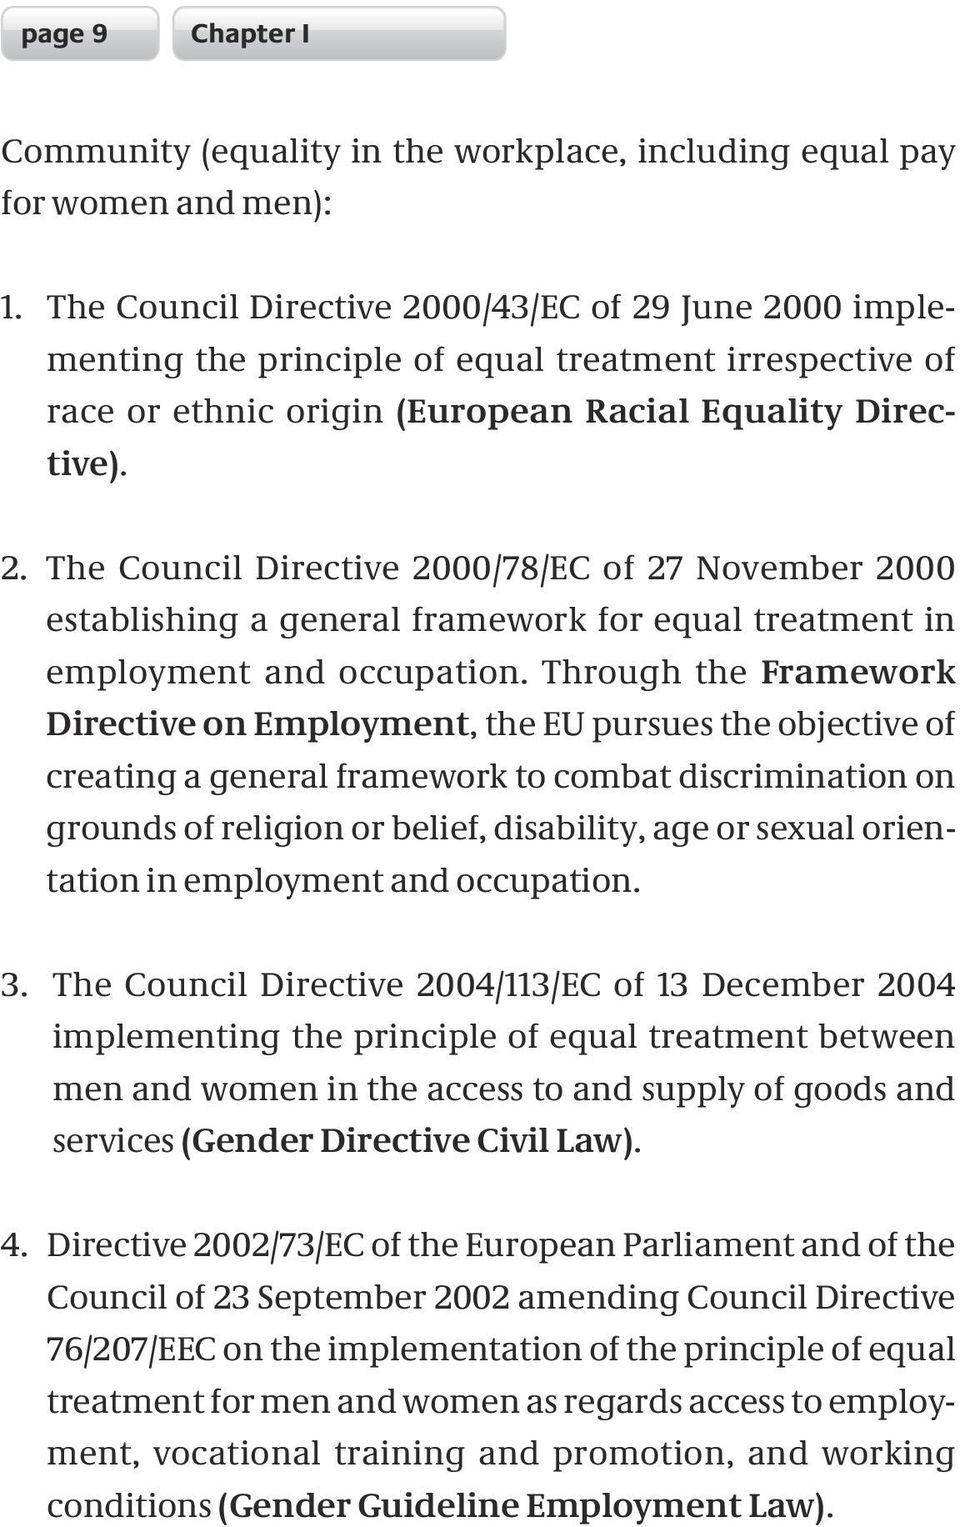 Through the Framework Directive on Employment, the EU pursues the objective of creating a general framework to combat discrimination on grounds of religion or belief, disability, age or sexual